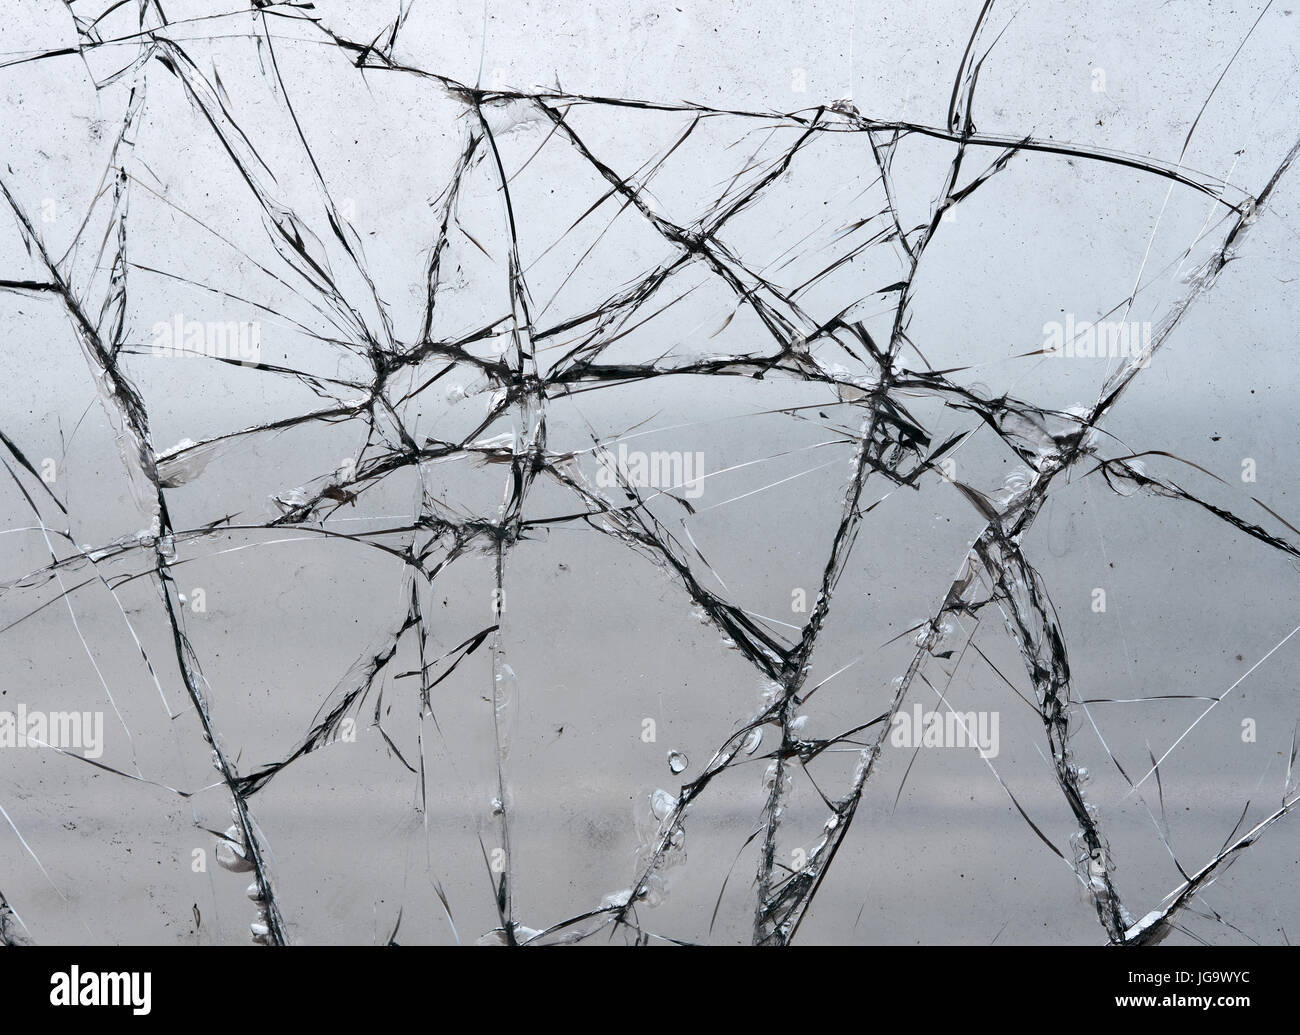 Shattered broken glass pattern window pane close up - Stock Image